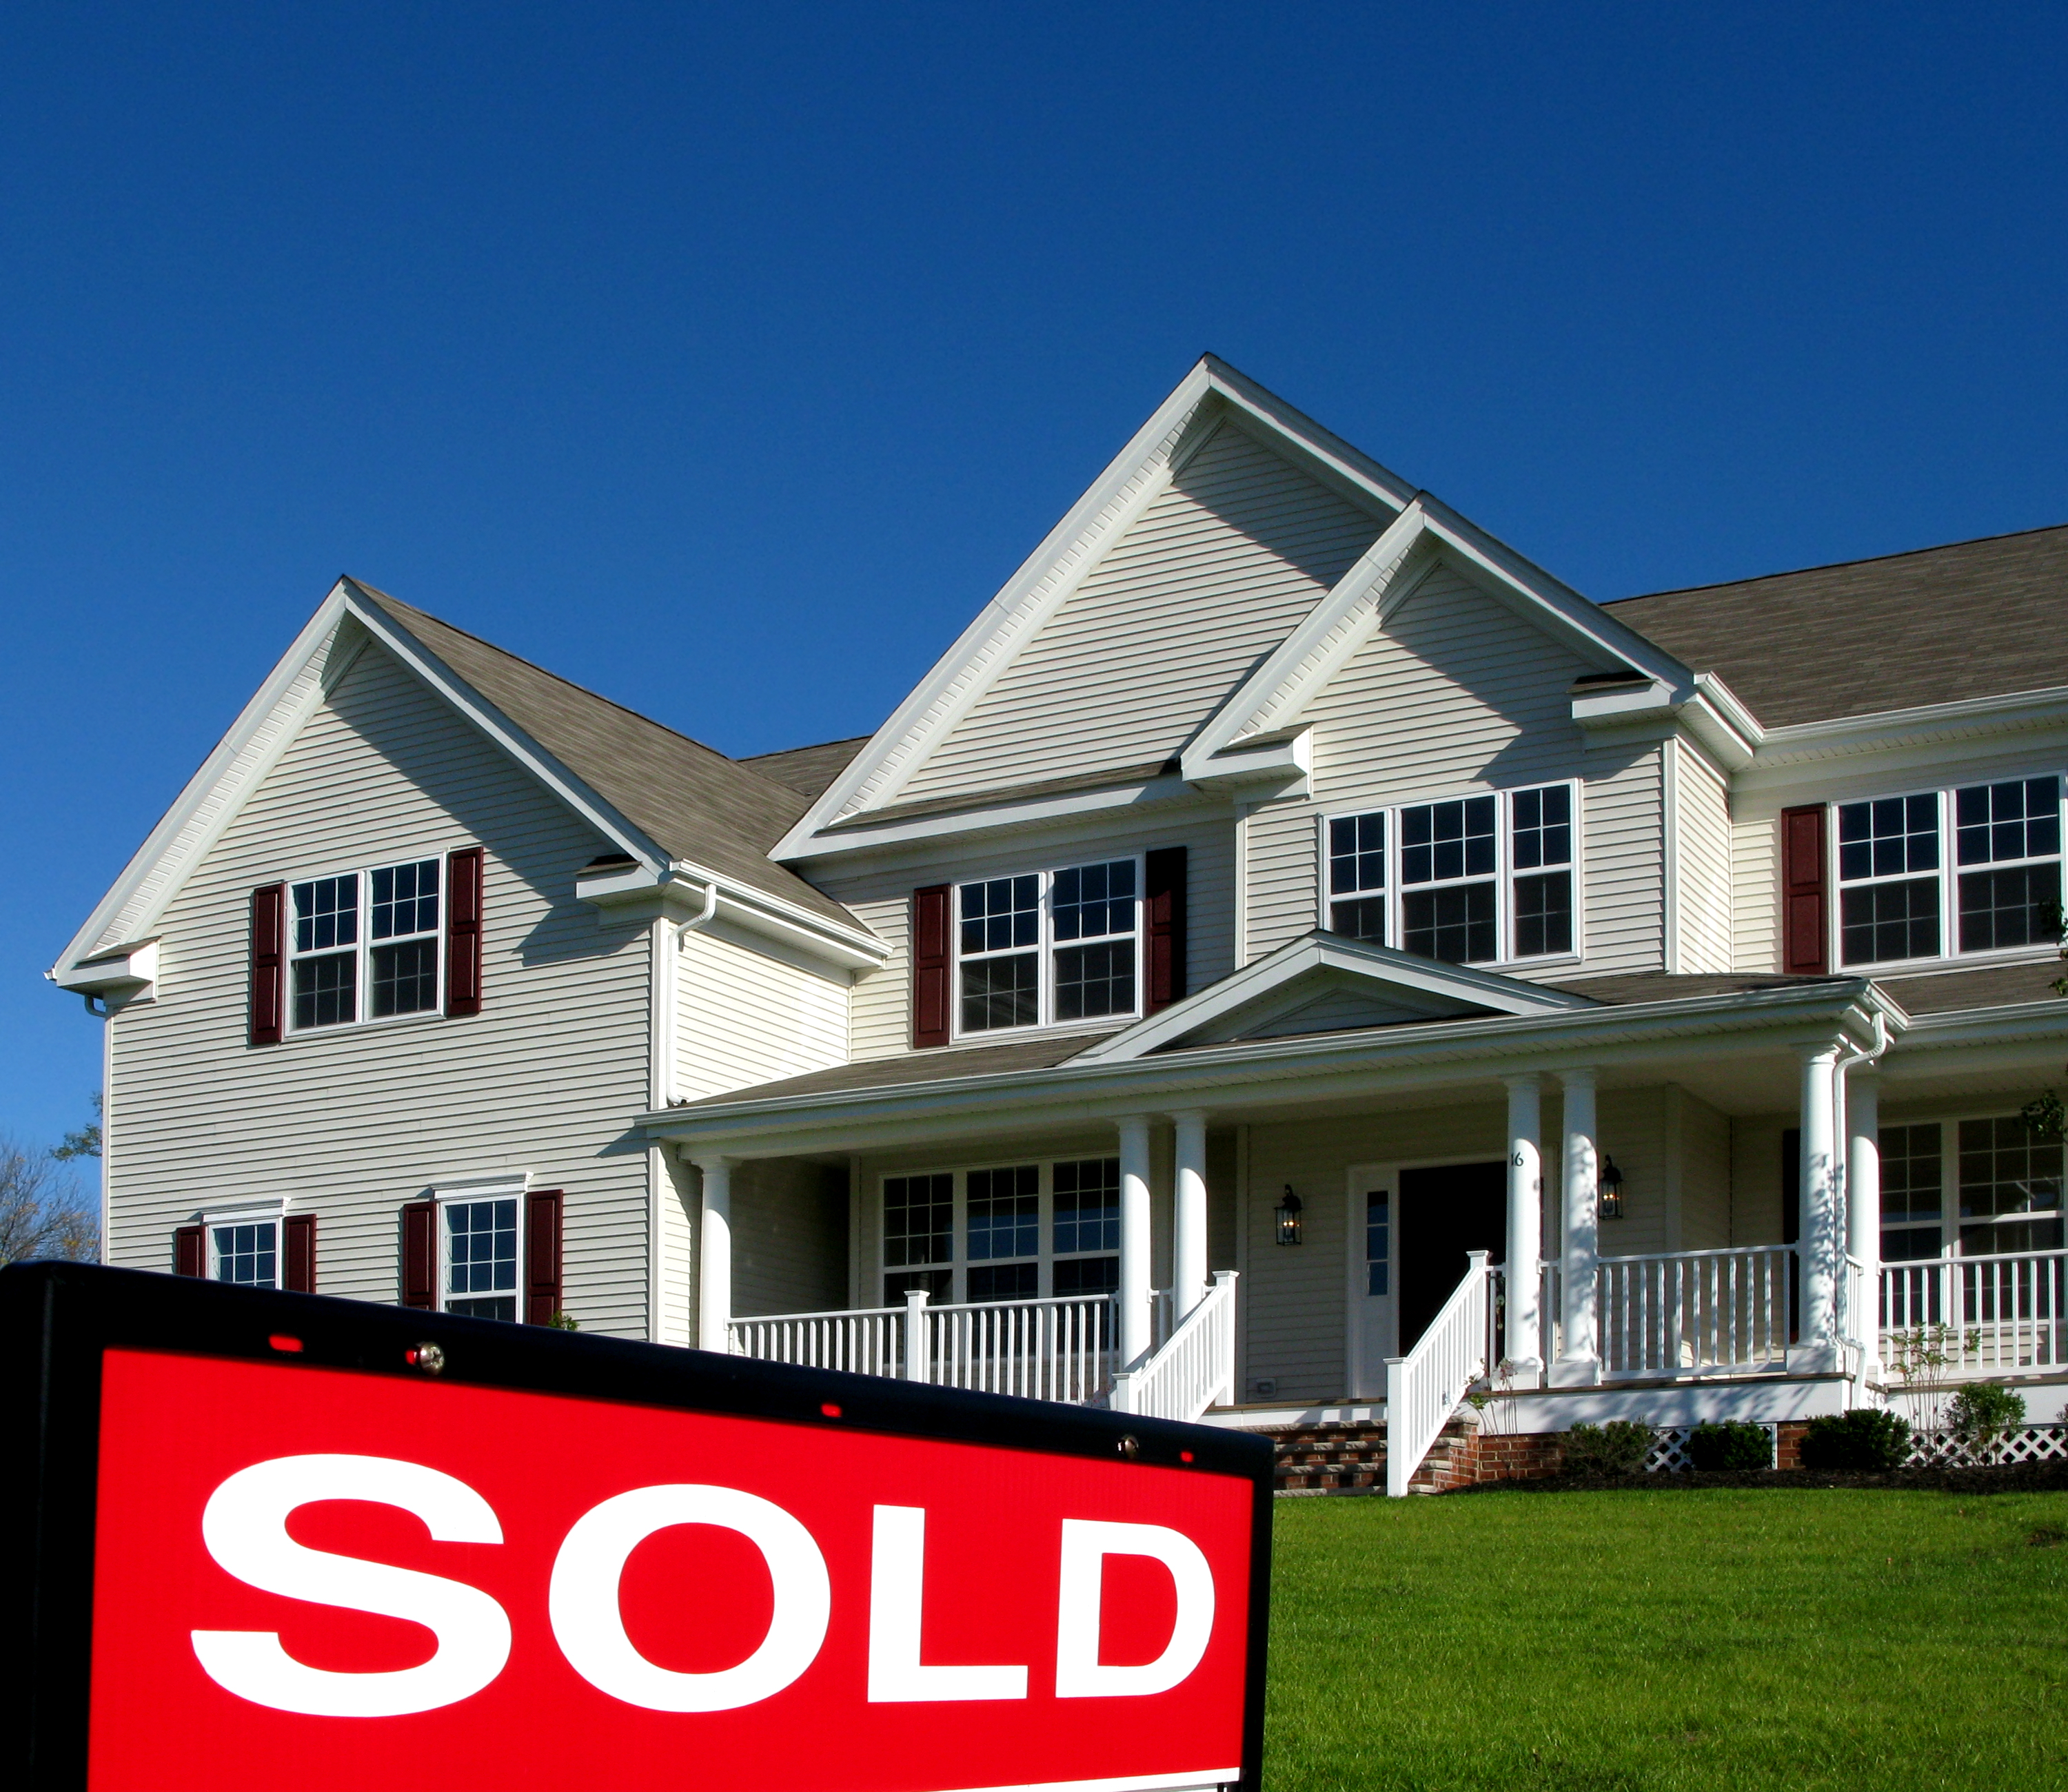 bigstock Real Estate Sold Sign and Hous 2302124